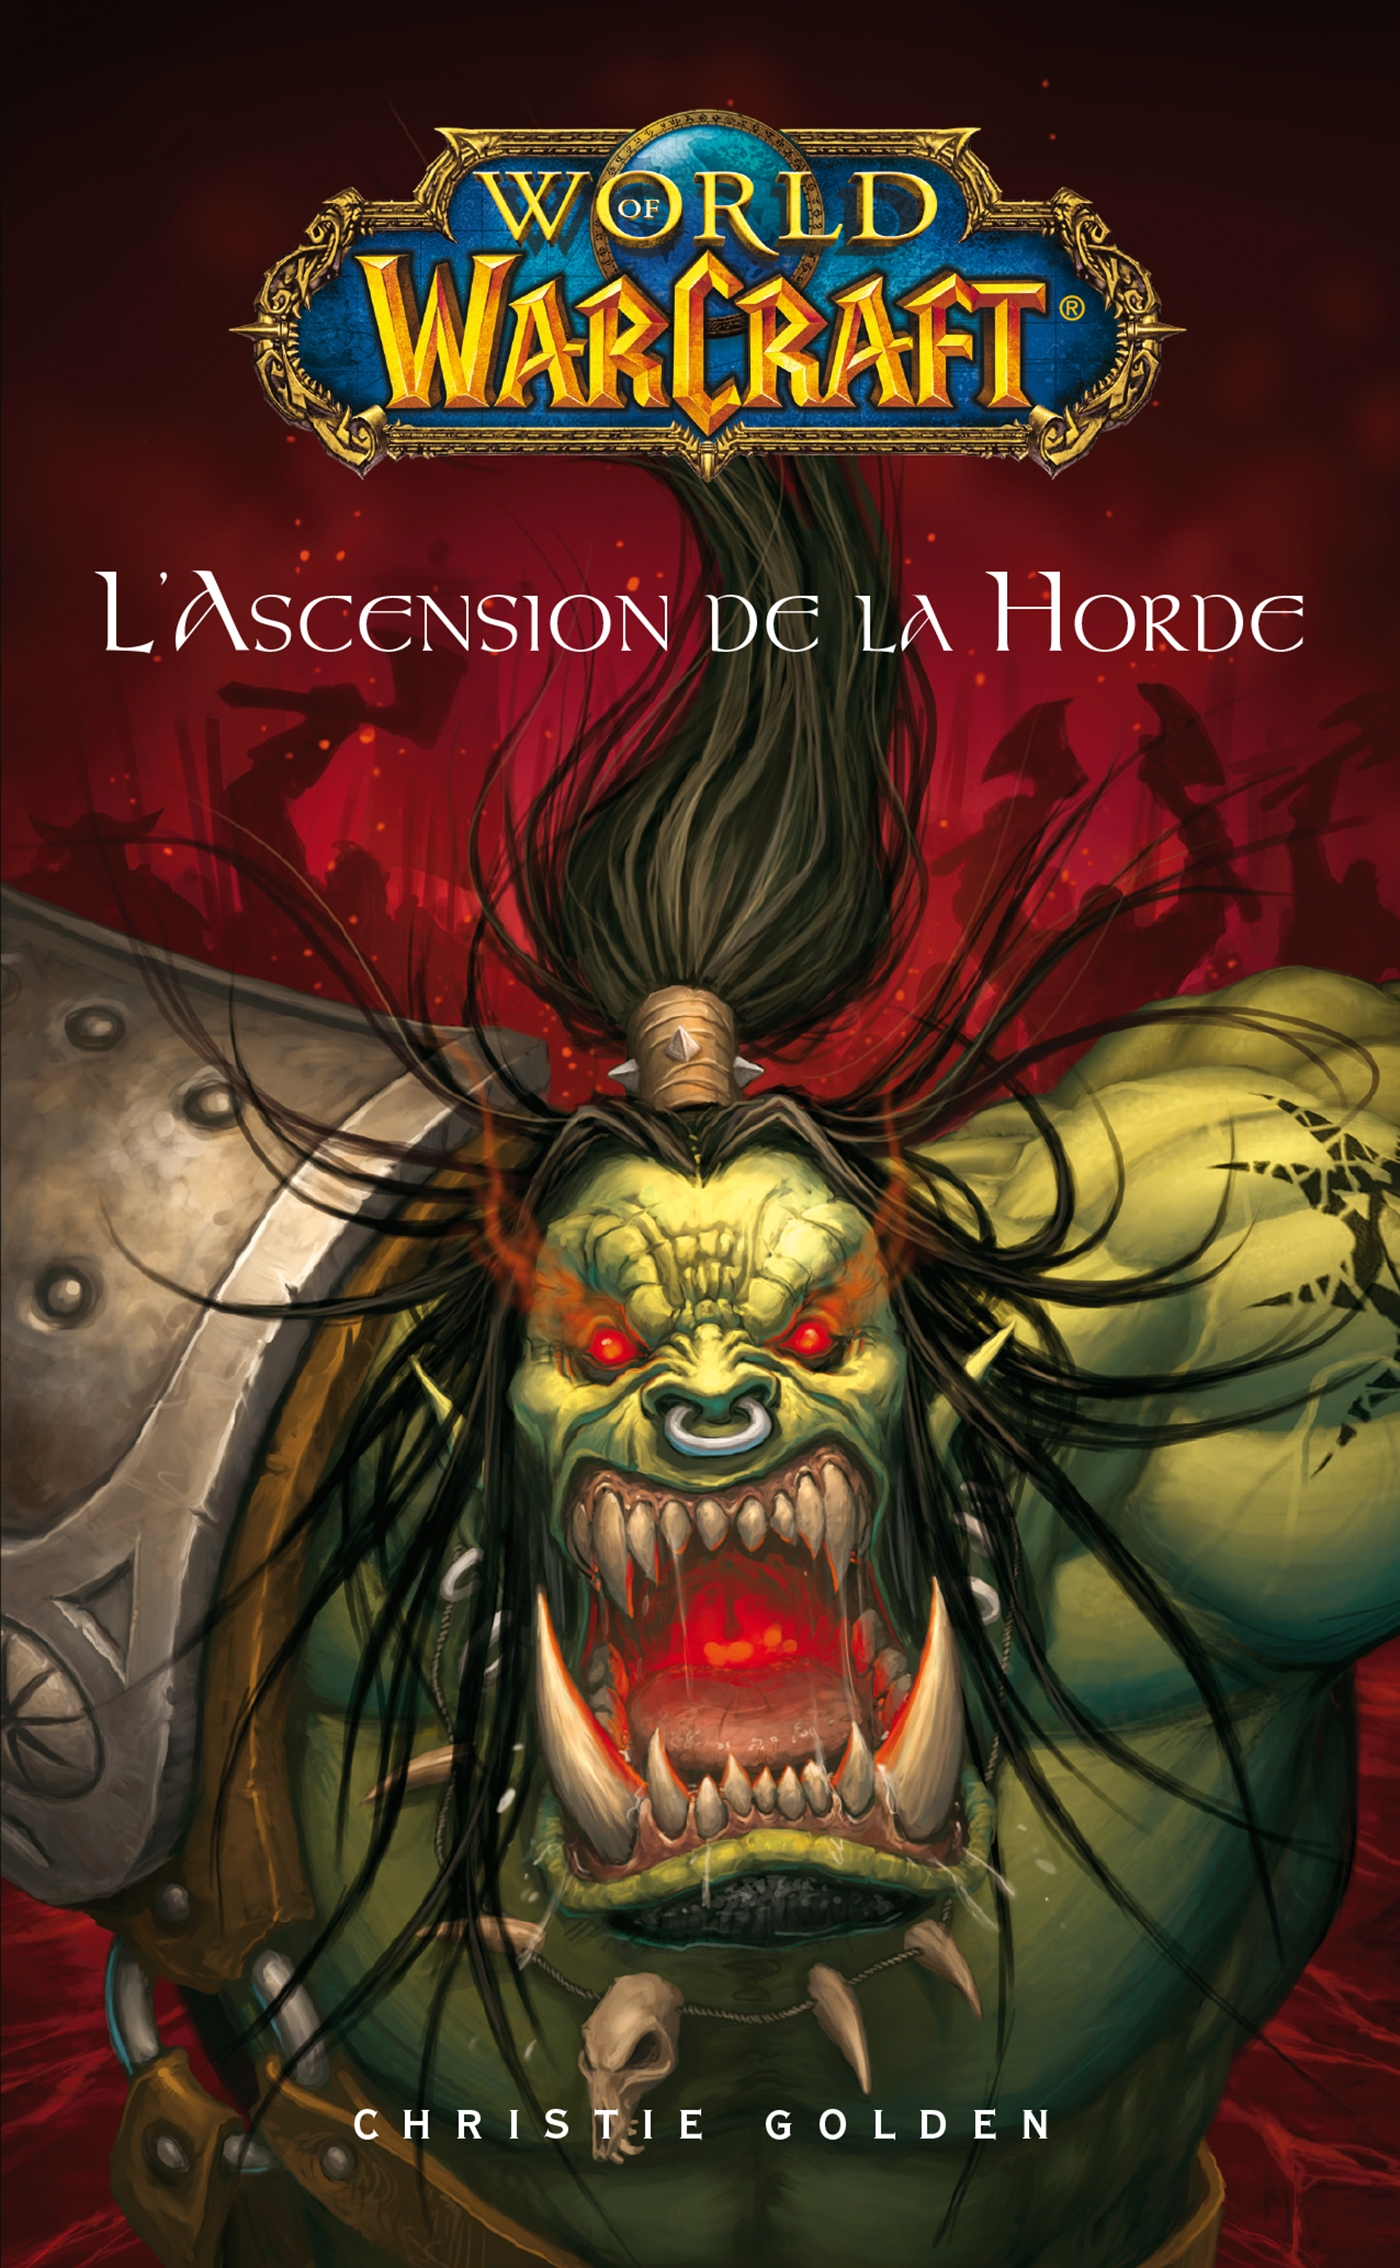 World of Warcraft - L'ascension de la horde